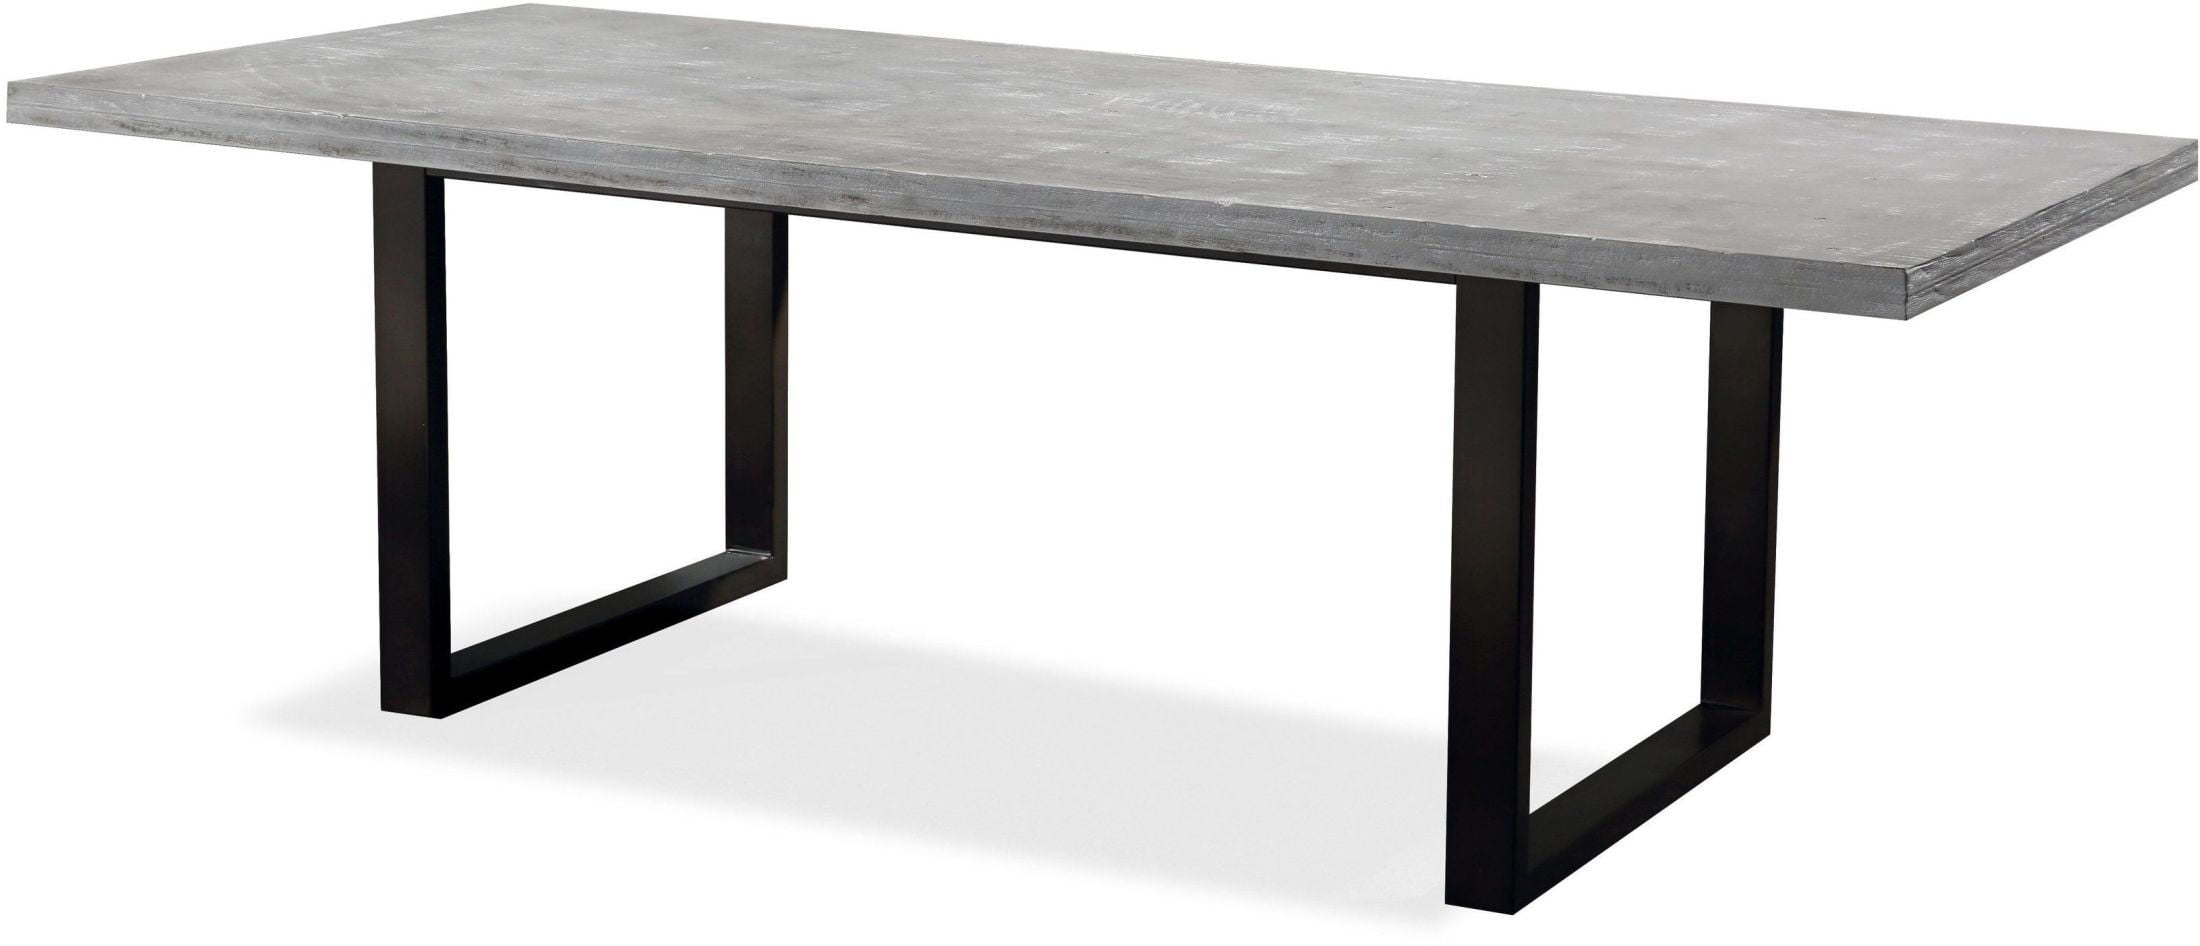 Urban Light Concrete Dining Table G5451 Tov Furniture